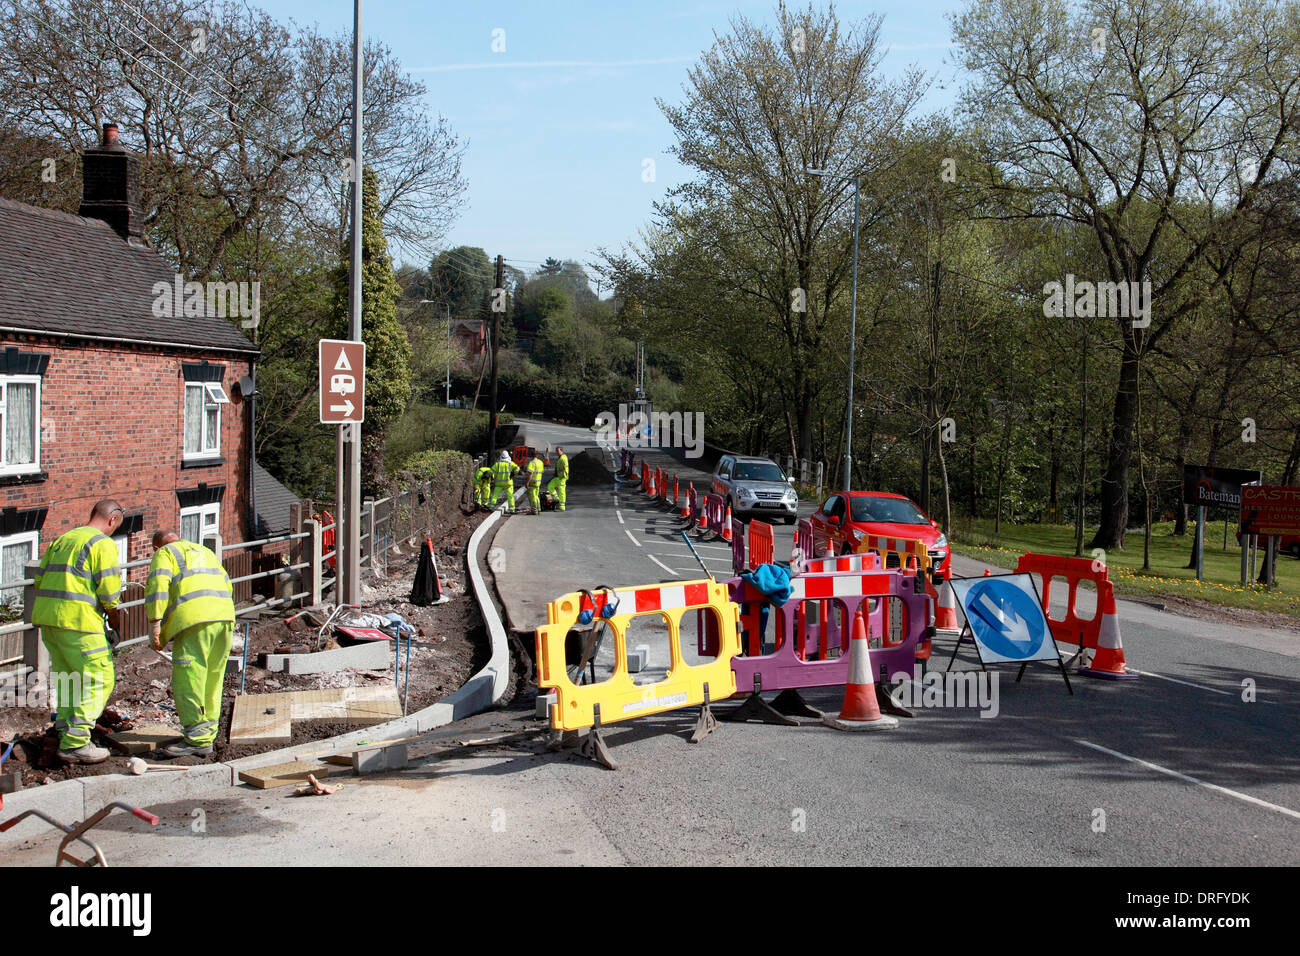 Installation of a new kerb and pavement on the A520 Cheadle Road at Cheddleton, Staffordshire Moorlands - Stock Image